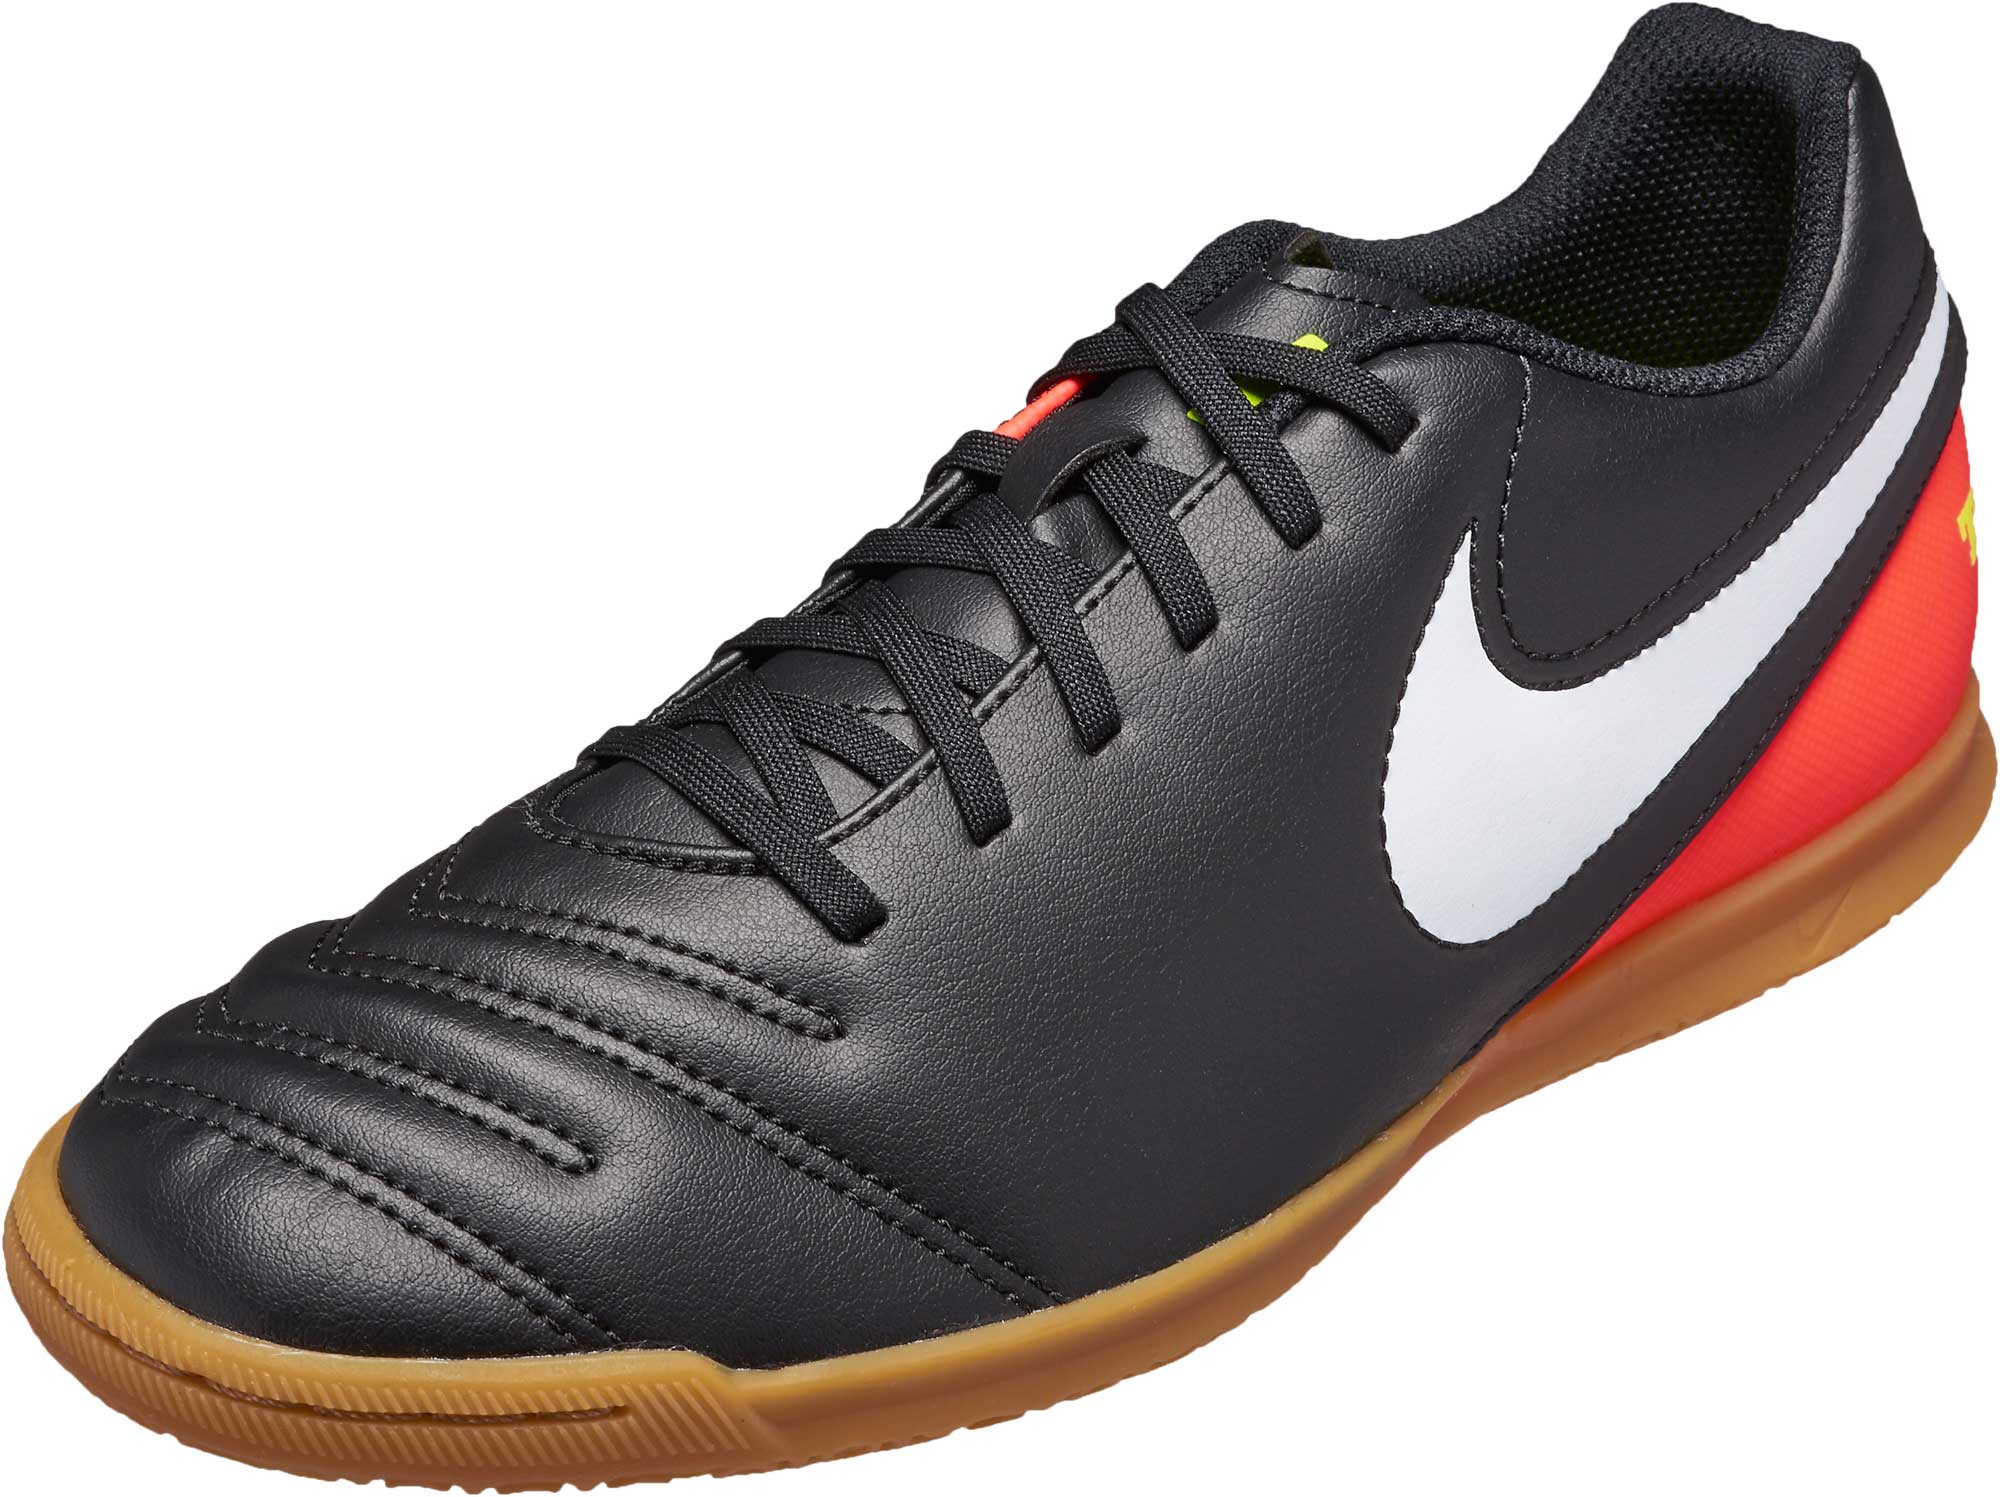 nike tiempox rio iii ic nike tiempox soccer cleats. Black Bedroom Furniture Sets. Home Design Ideas